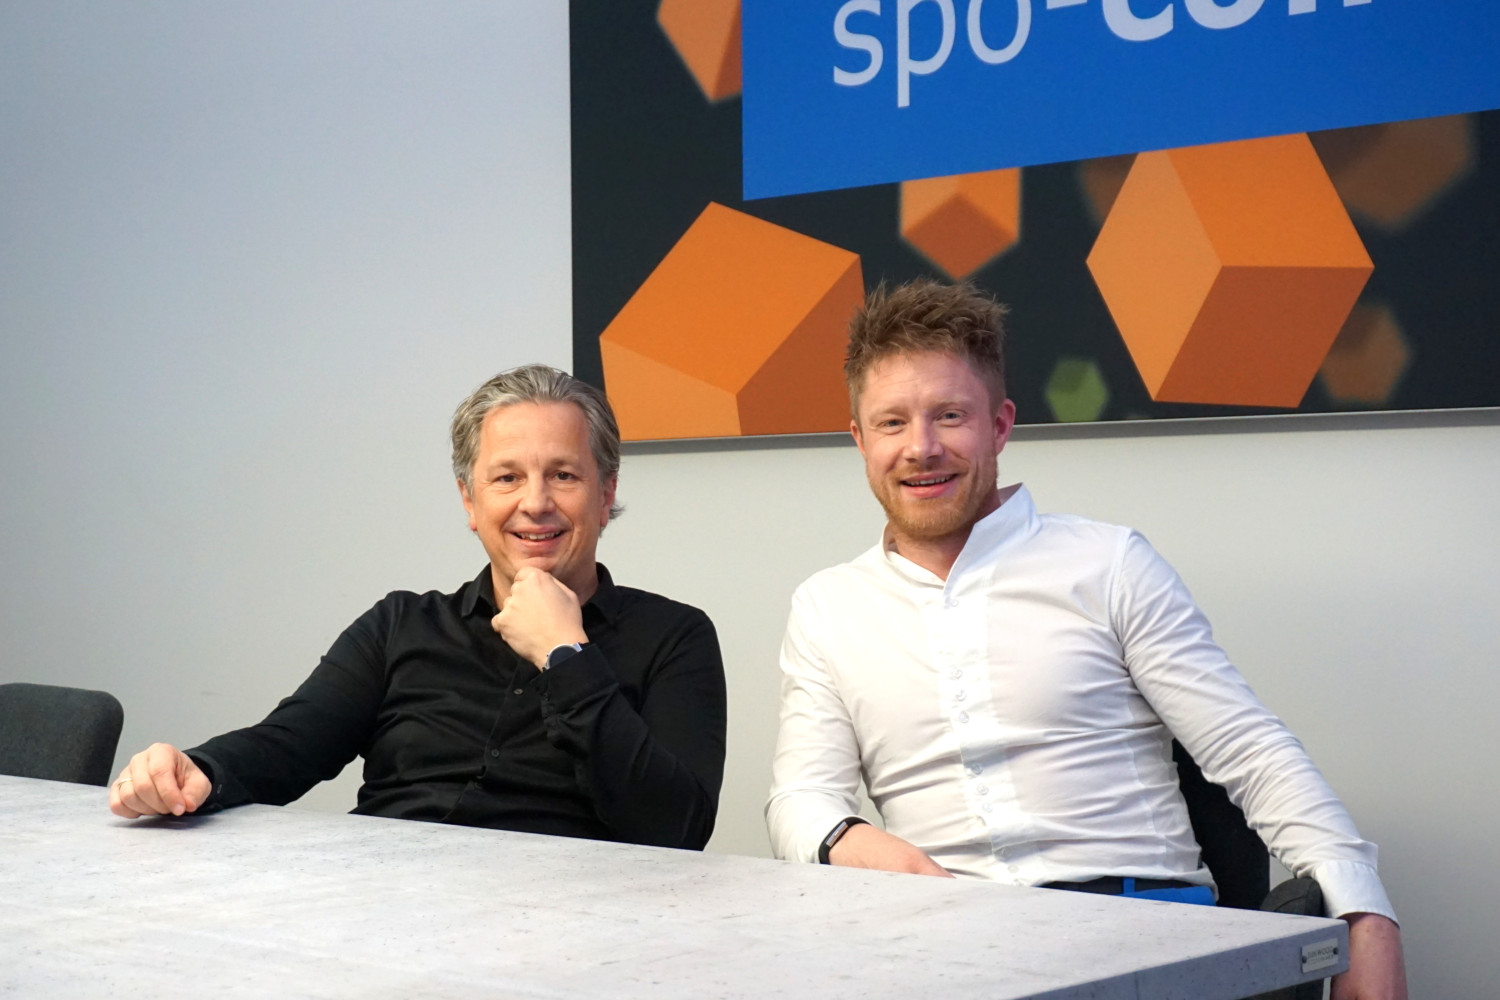 How was 2018? An interview with the spo-comm management